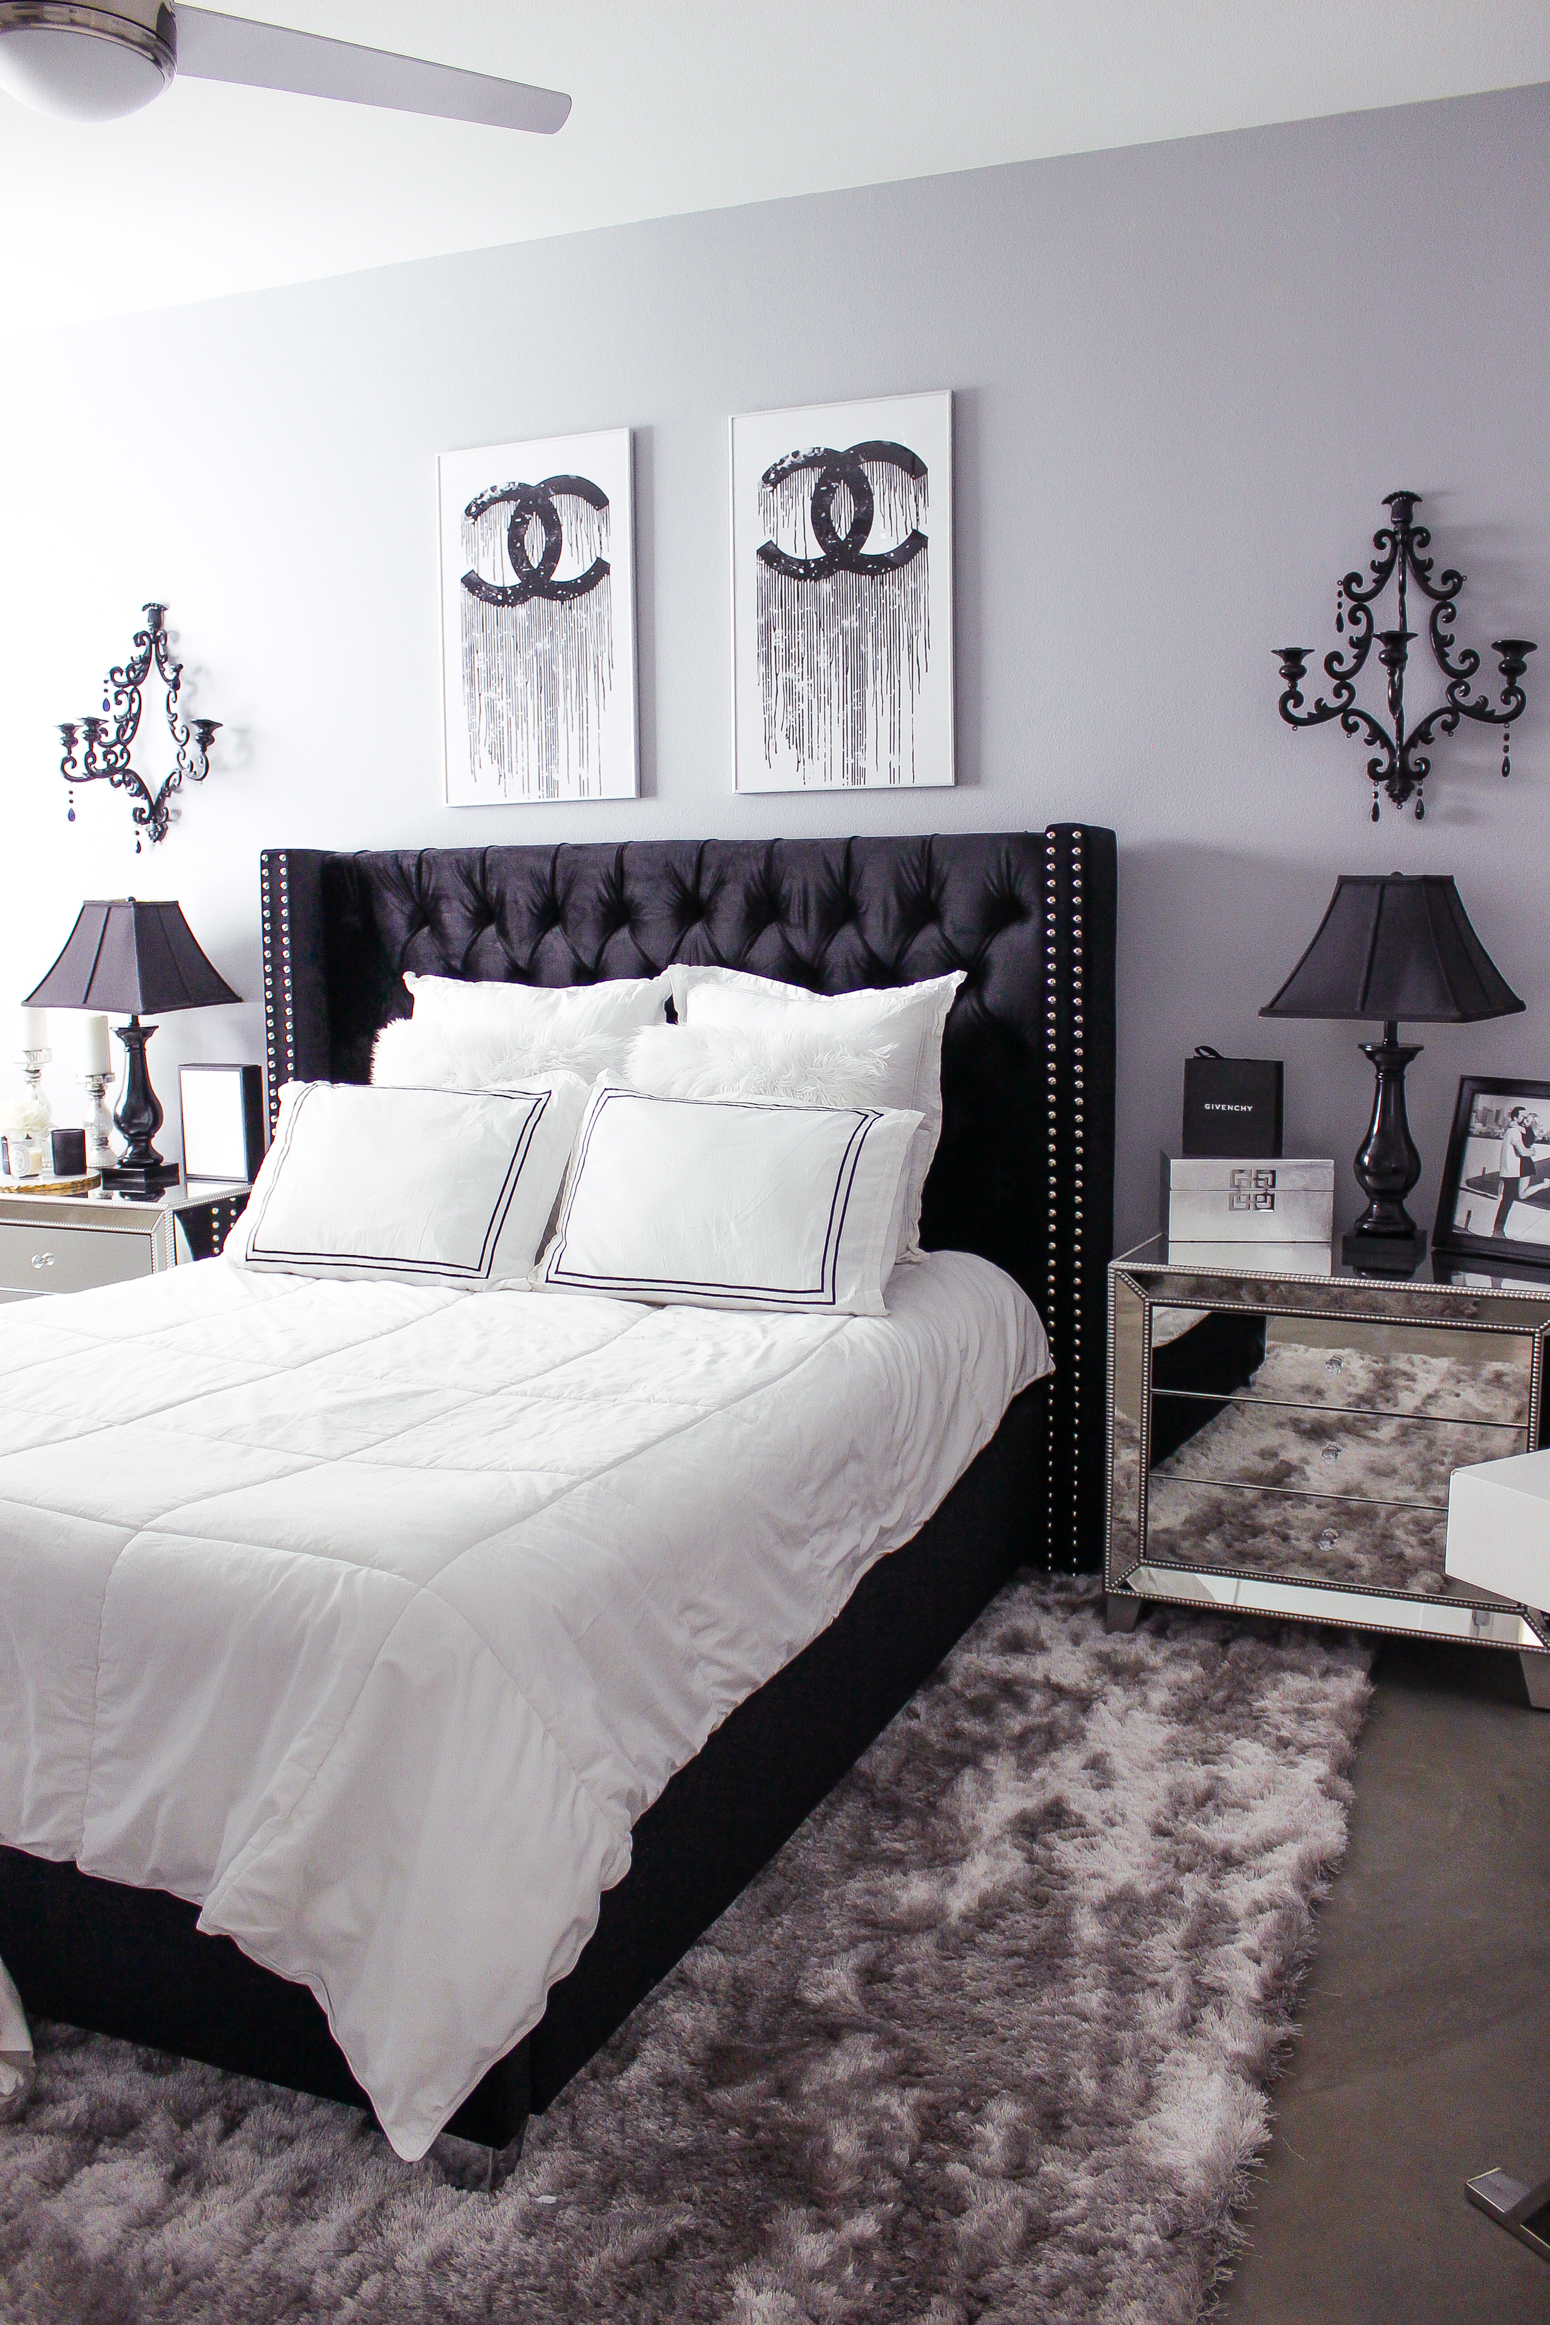 Black white bedroom decor reveal Black and white bedroom decor